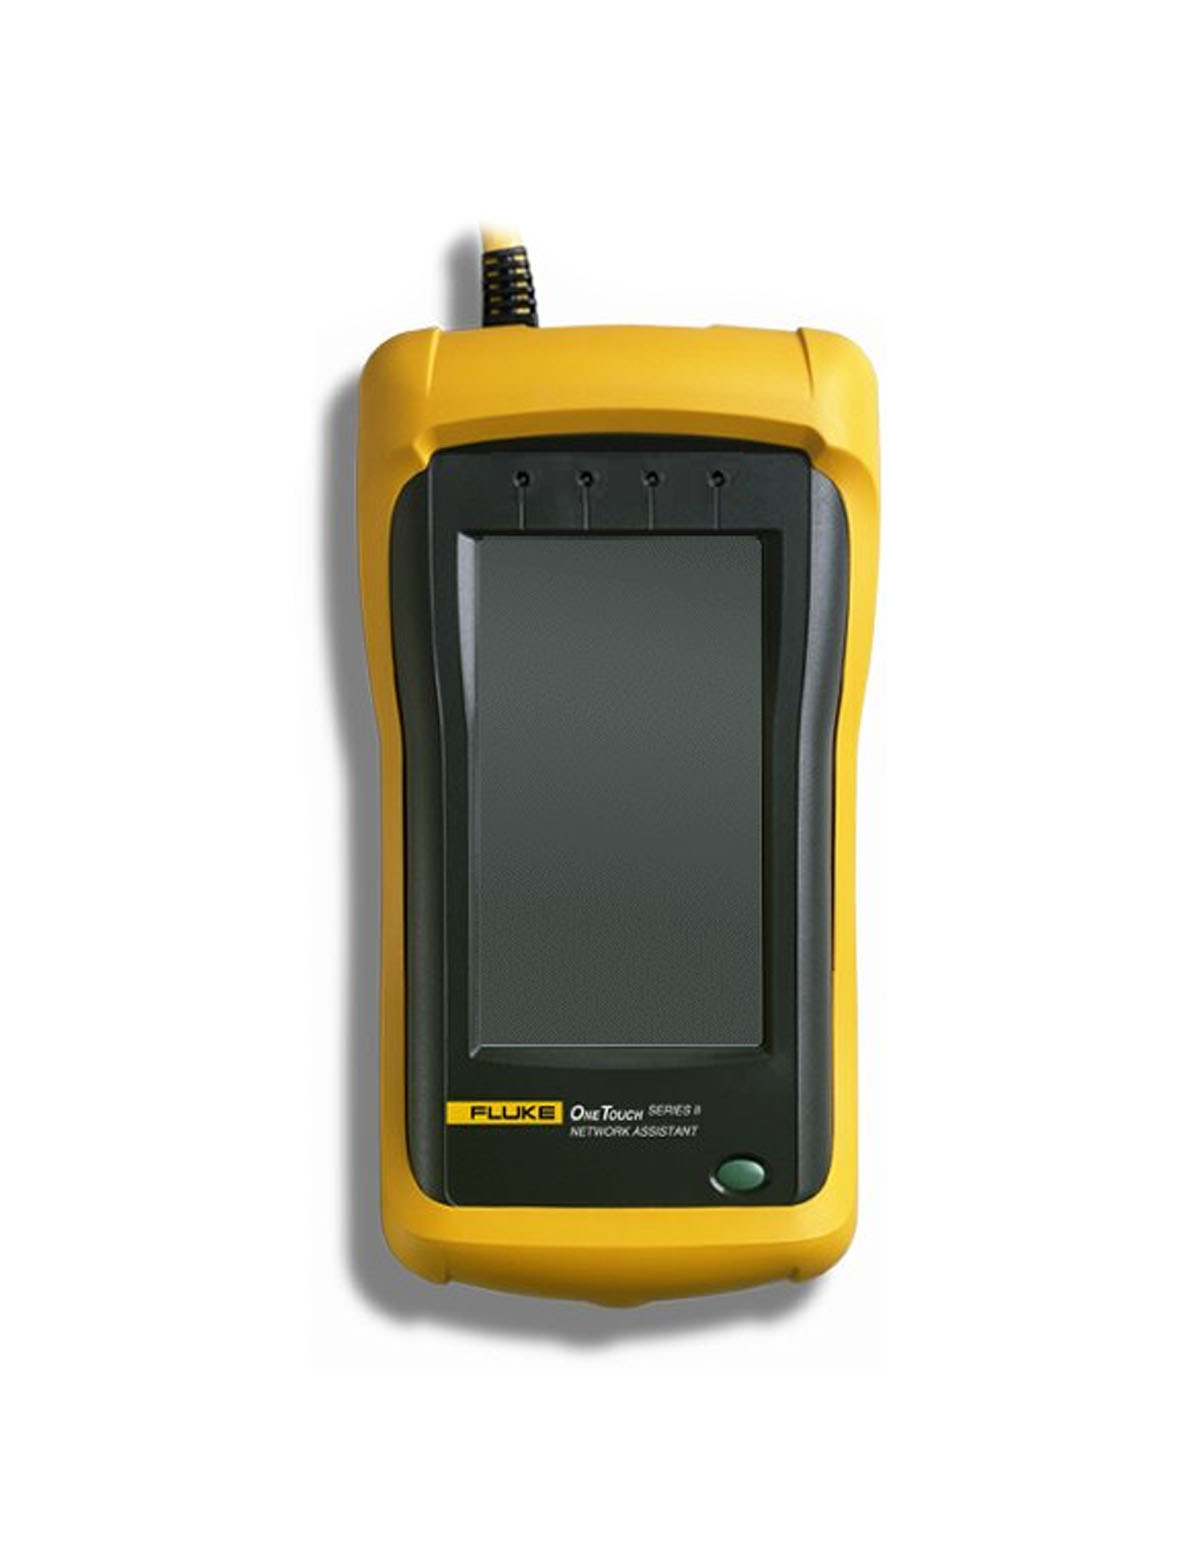 Fluke OneTouch Series II for sale